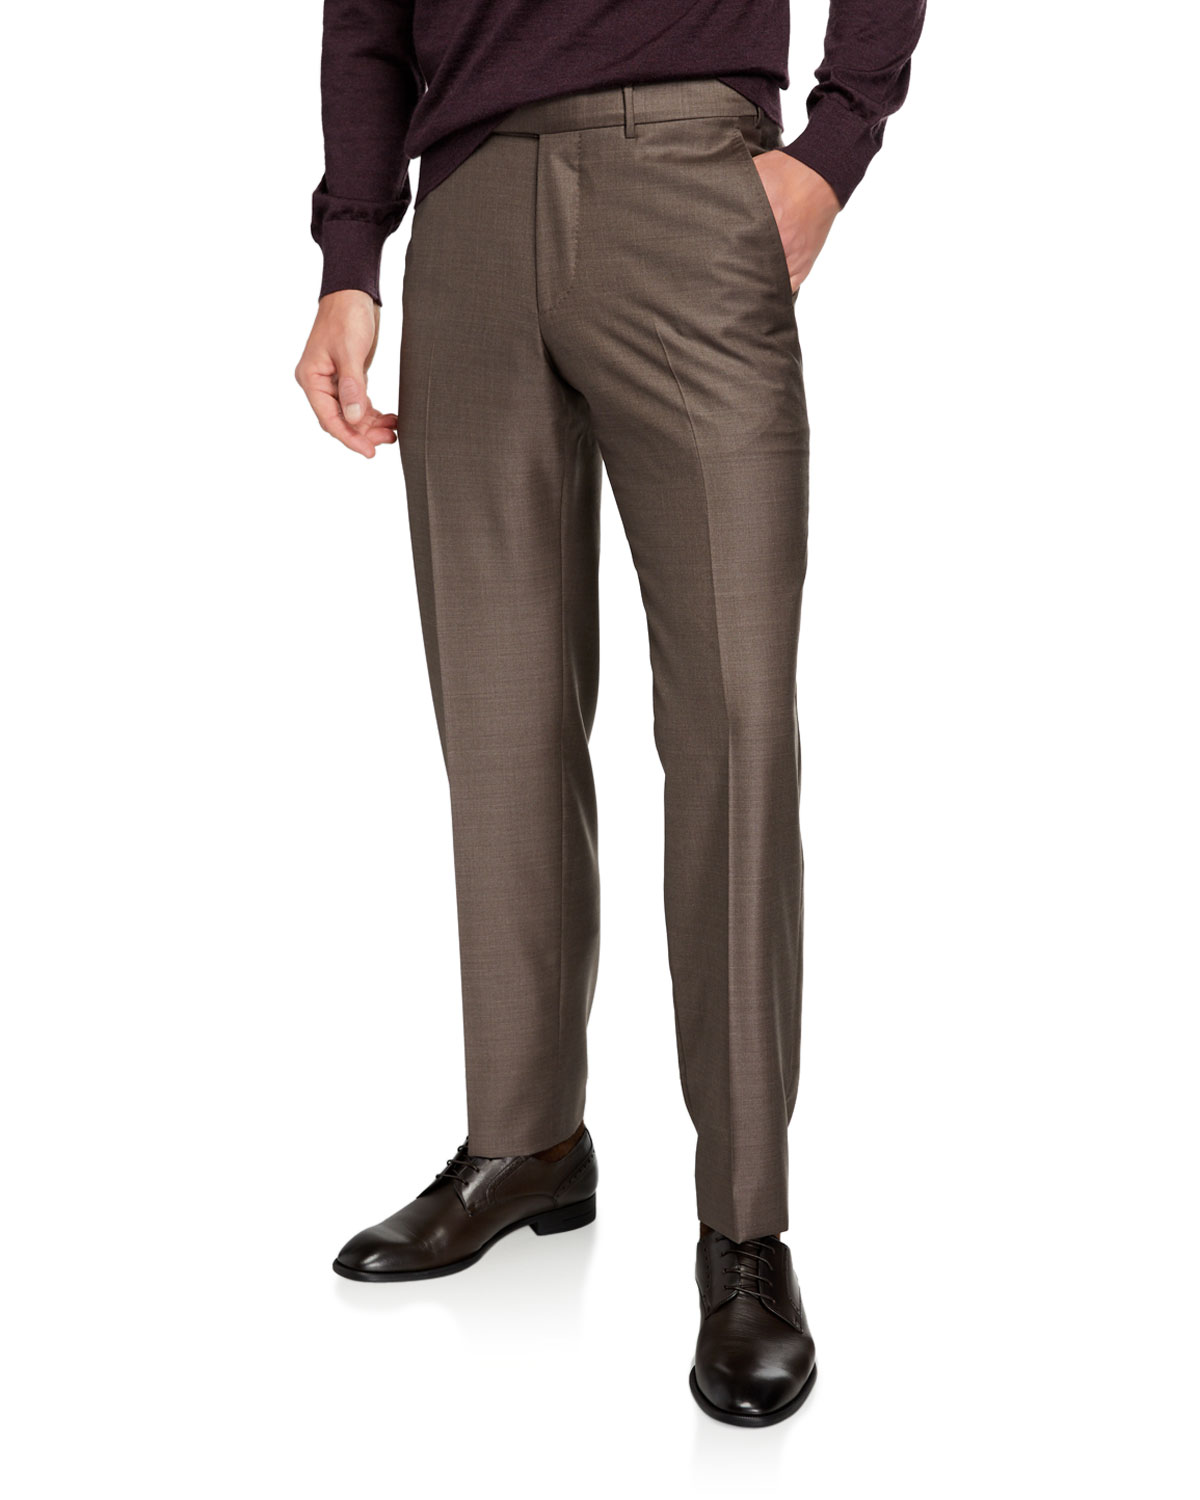 Men's Trofeo Wool Flat Front Trousers by Ermenegildo Zegna